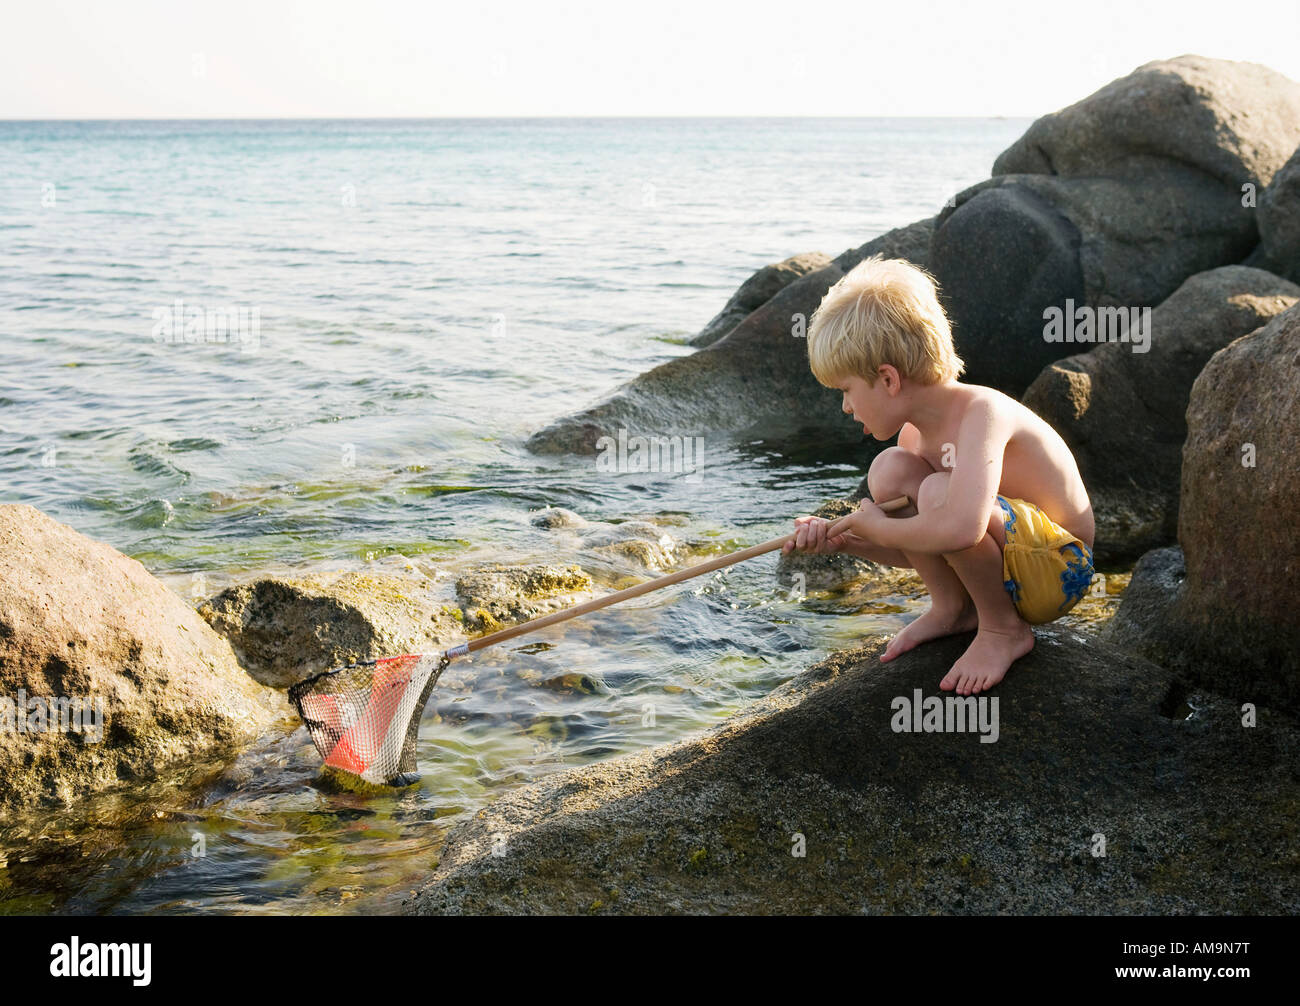 Young boy crouched on rocks fishing with a net. Stock Photo